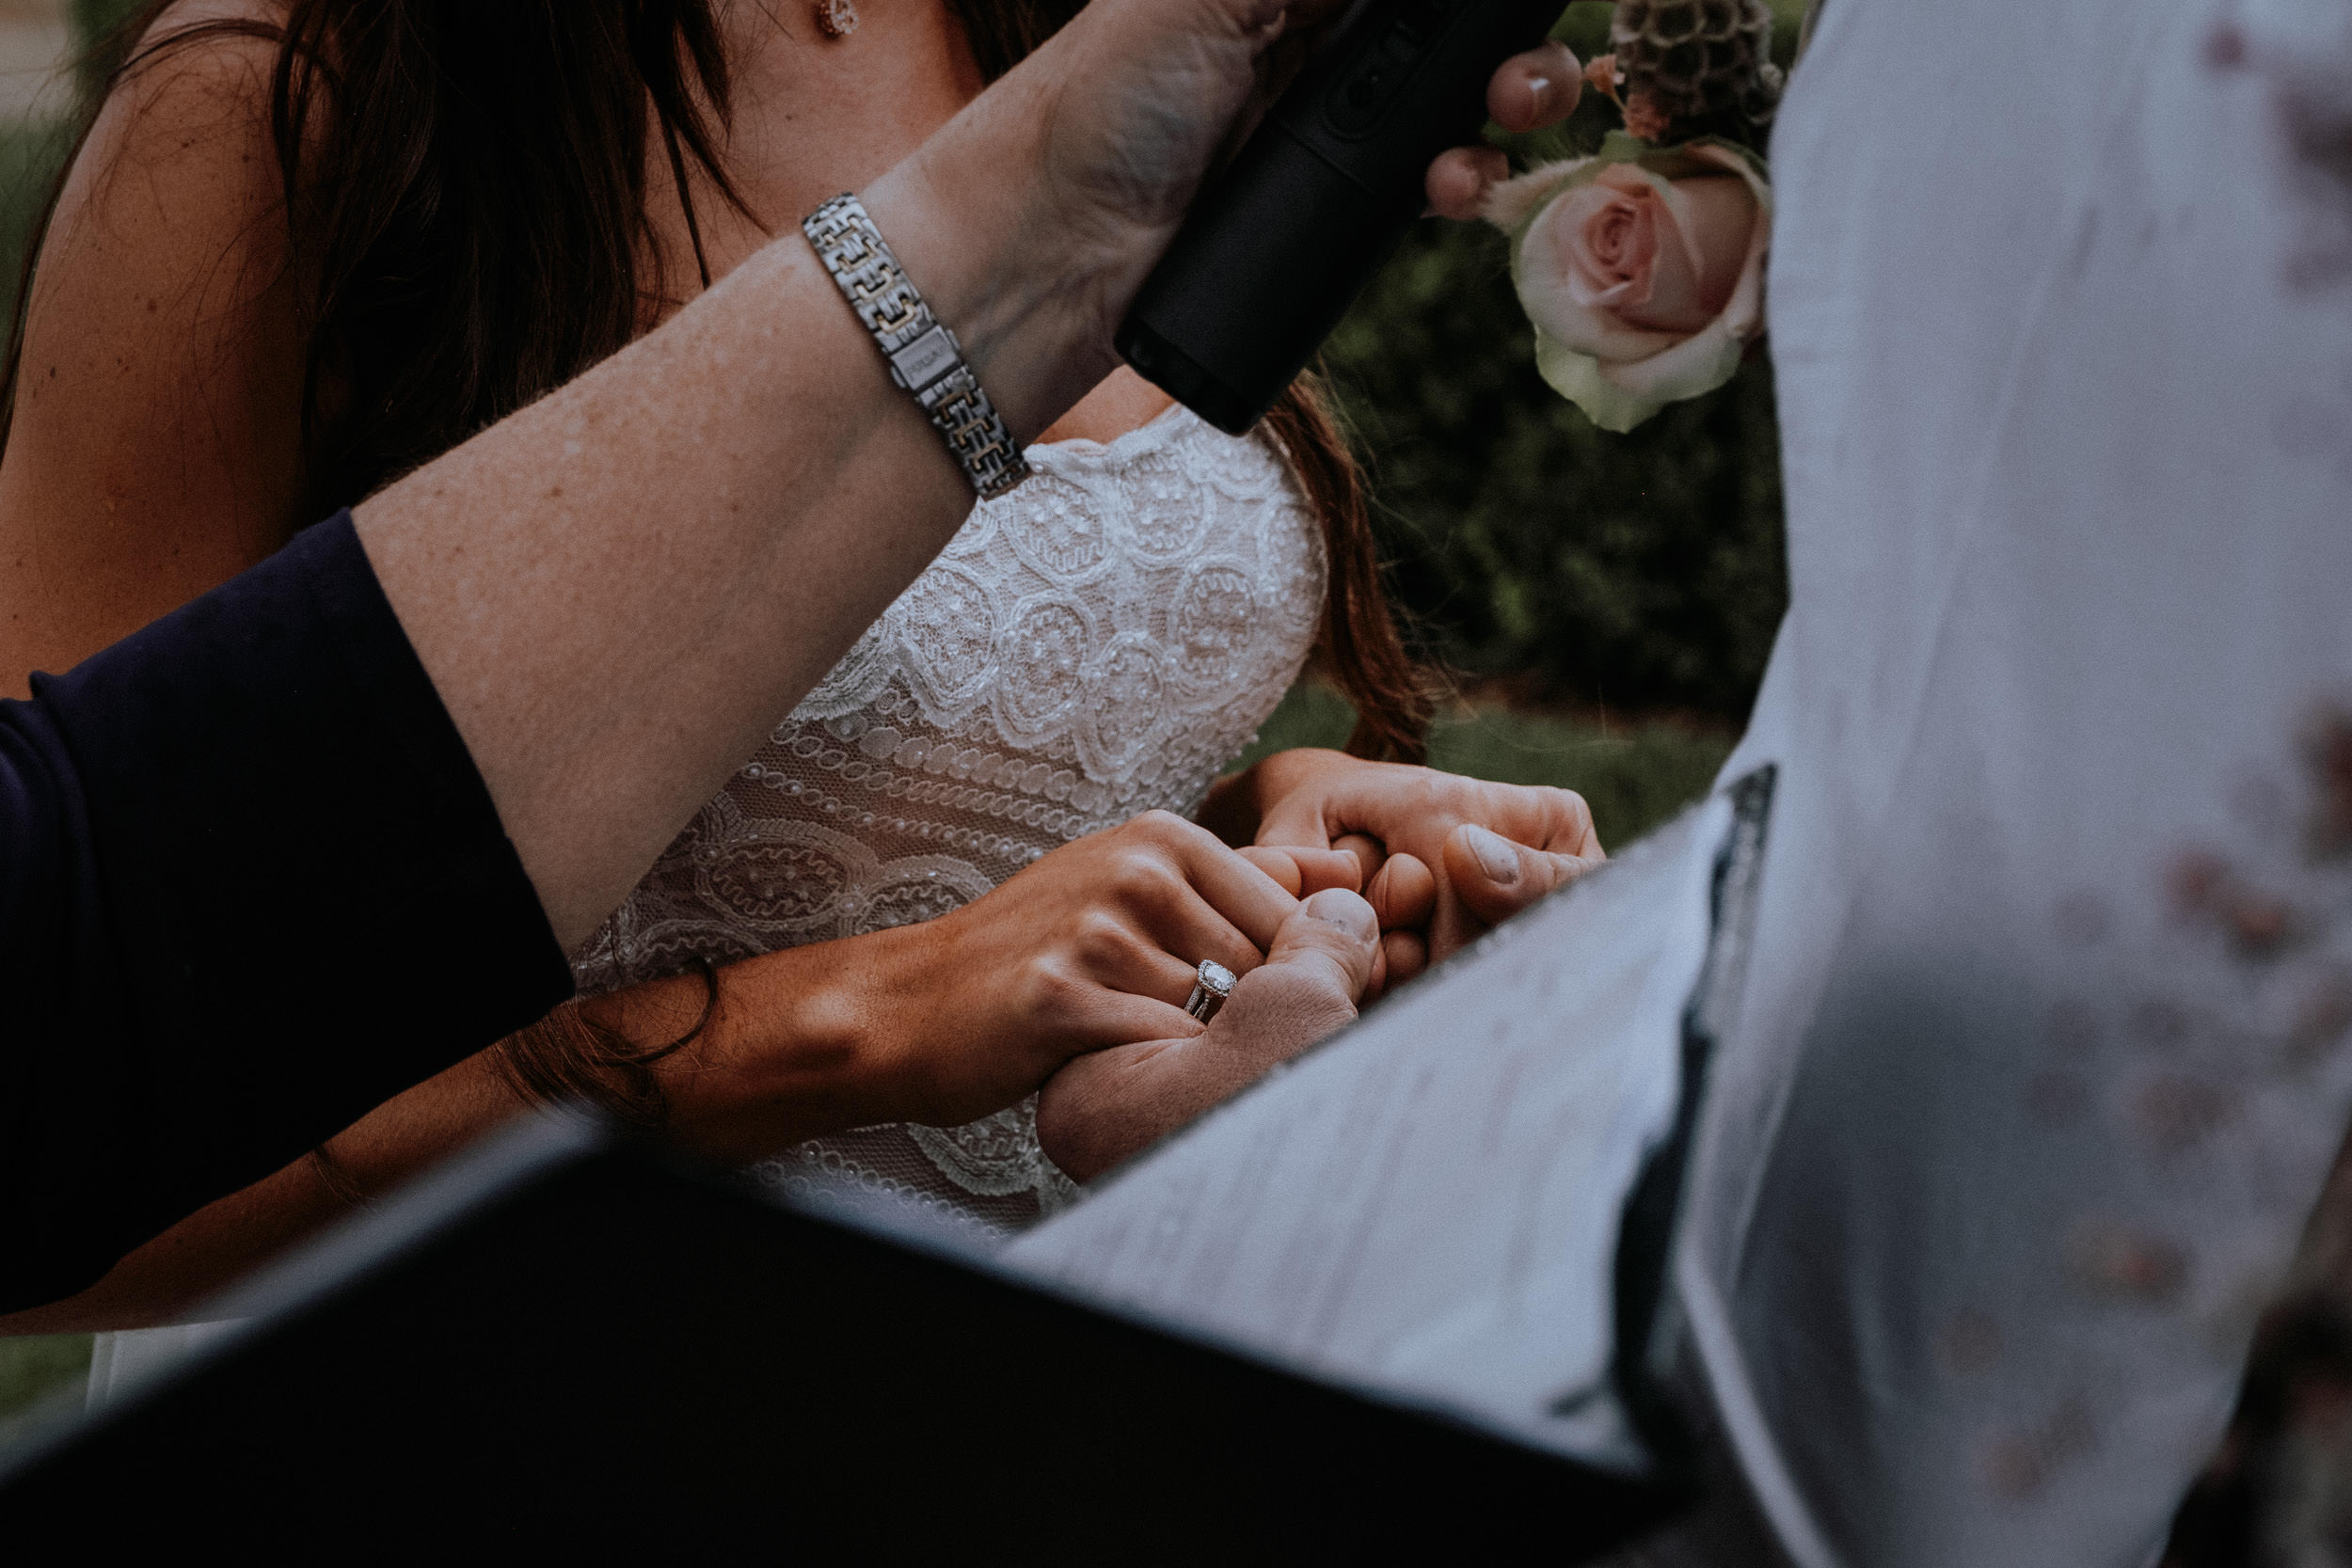 A close up on a bride and groom holding hands during their wedding ceremony